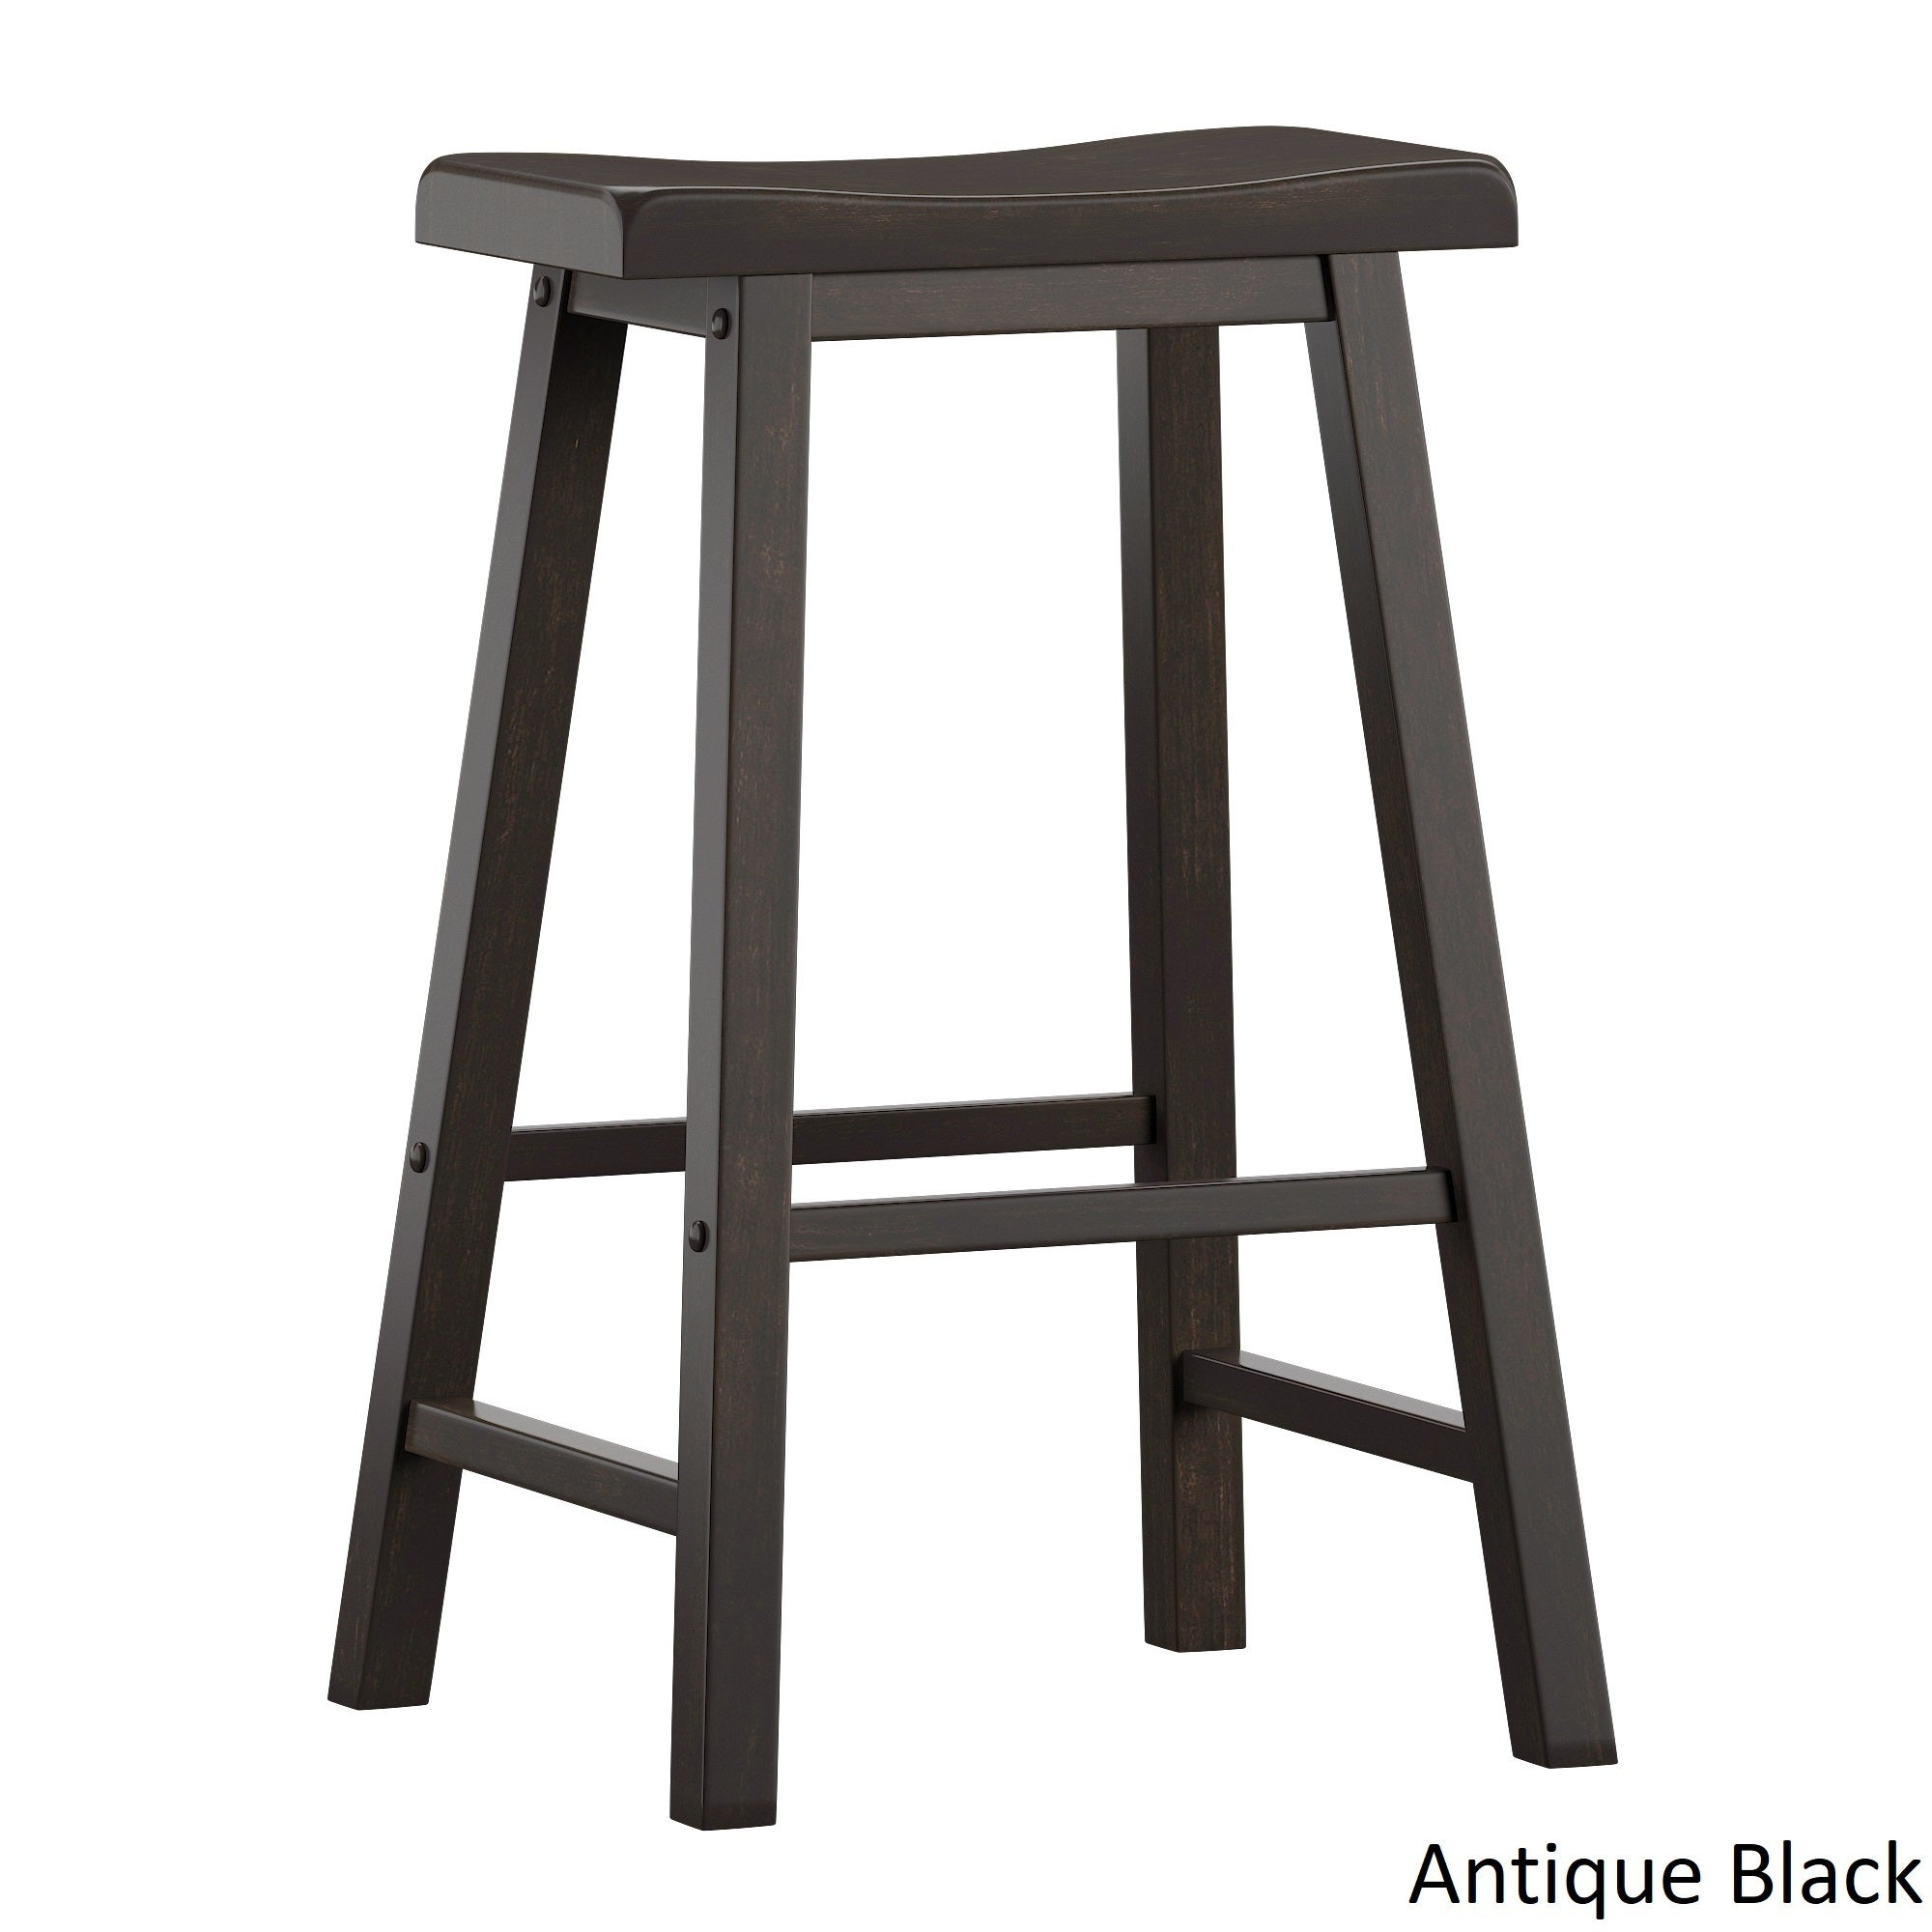 Salvador Ii Saddle Seat 29 Inch Bar Height Backless Stools Set Of 2 By Inspire Q Classic On Sale Overstock 21786004